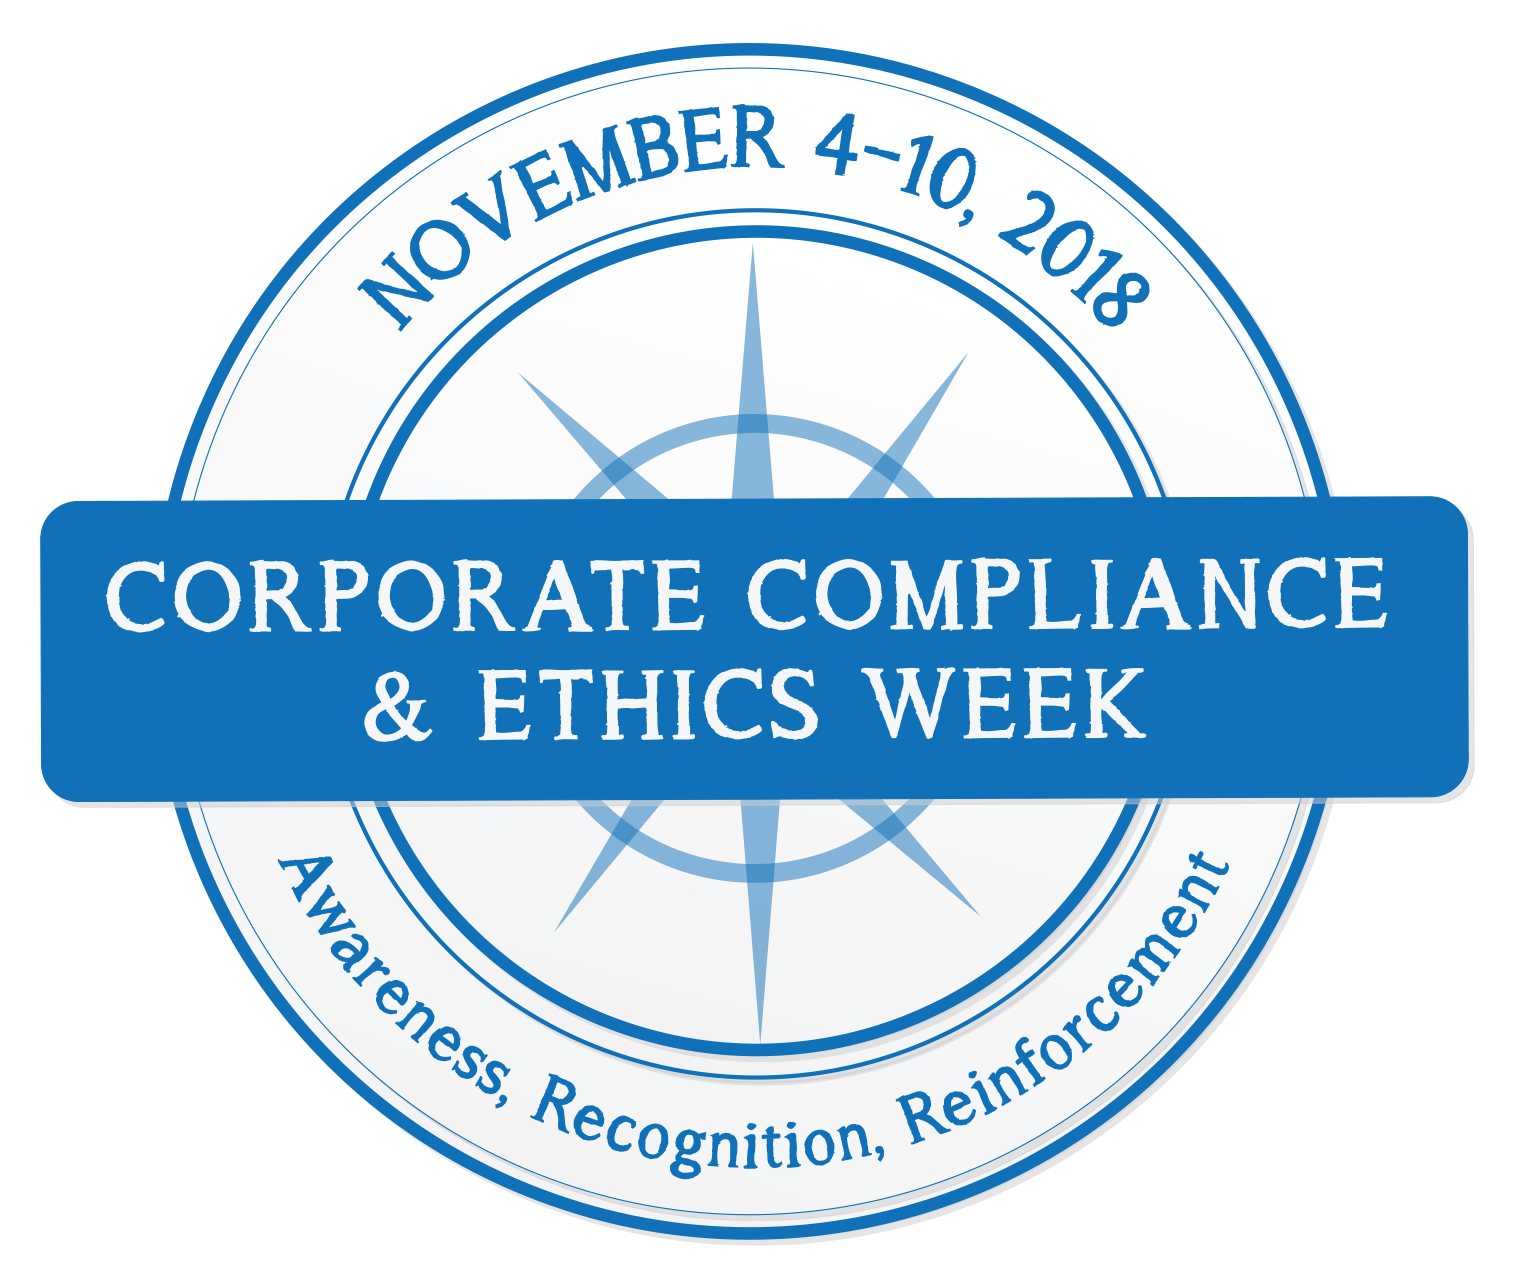 Corporate compliance ethics week society of corporate download the corporate compliance ethics week logo to use on your organizations intranet or in your employee newsletter no attribution to scce is 1betcityfo Images